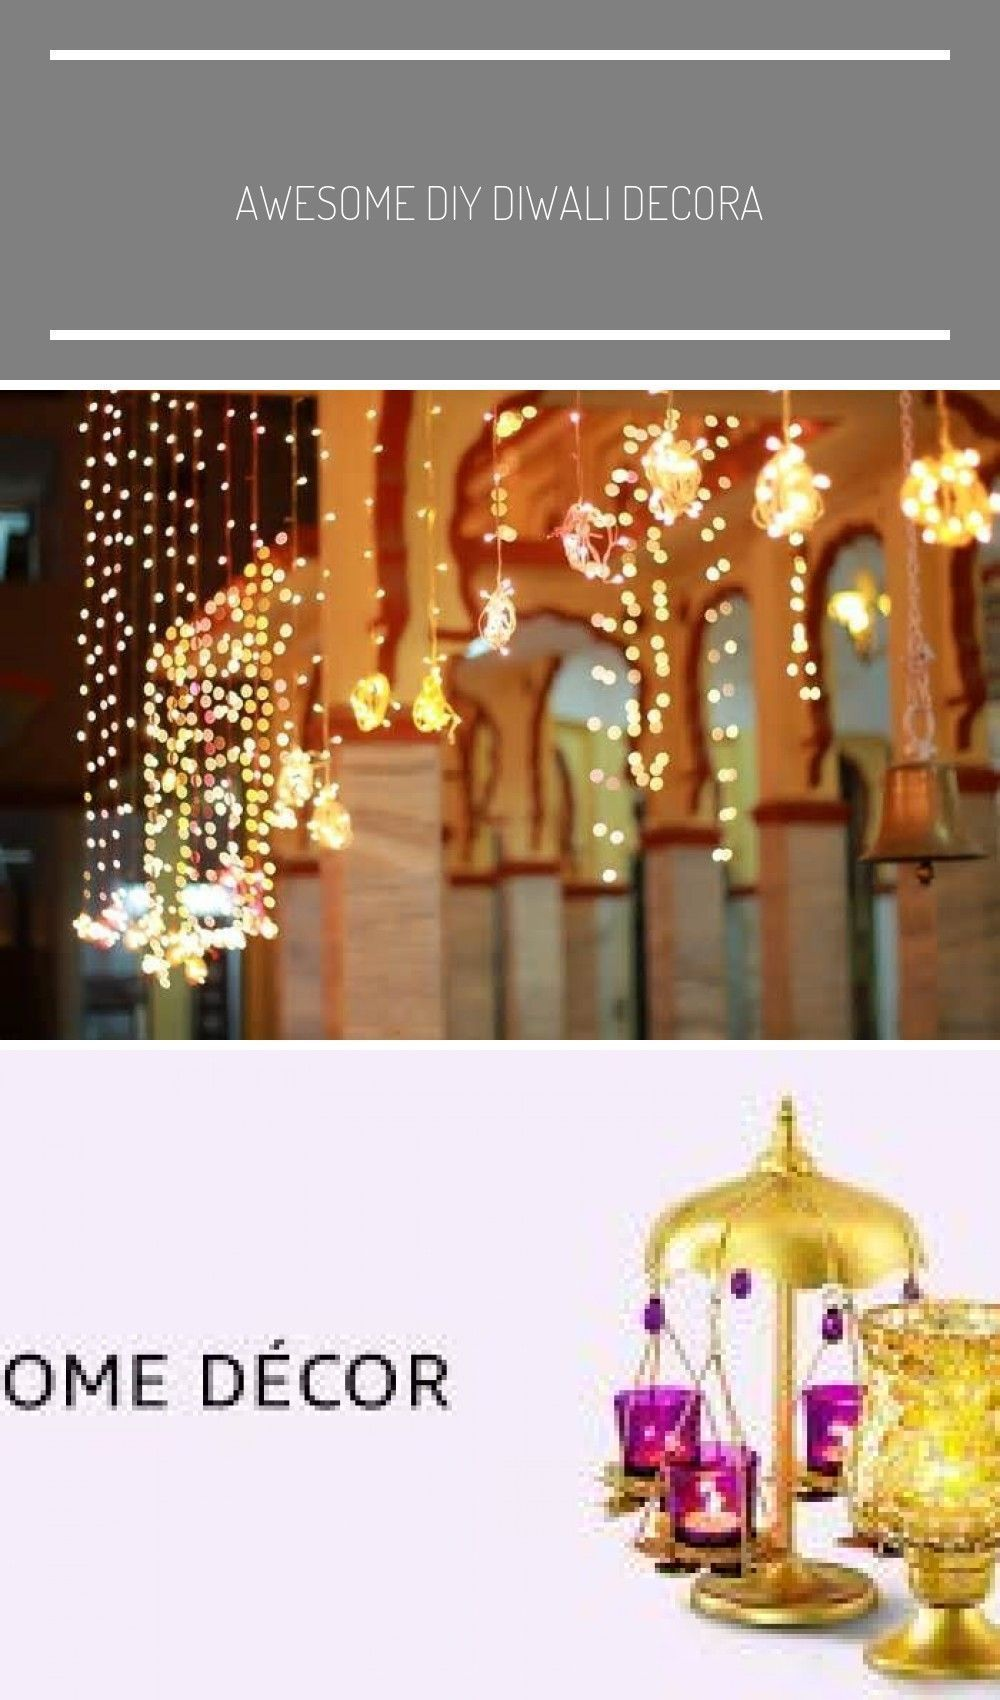 Awesome DIY Diwali Dekoration #Ideen zu versuchen bei #Home #homedesign #homedecor #diw ... #...